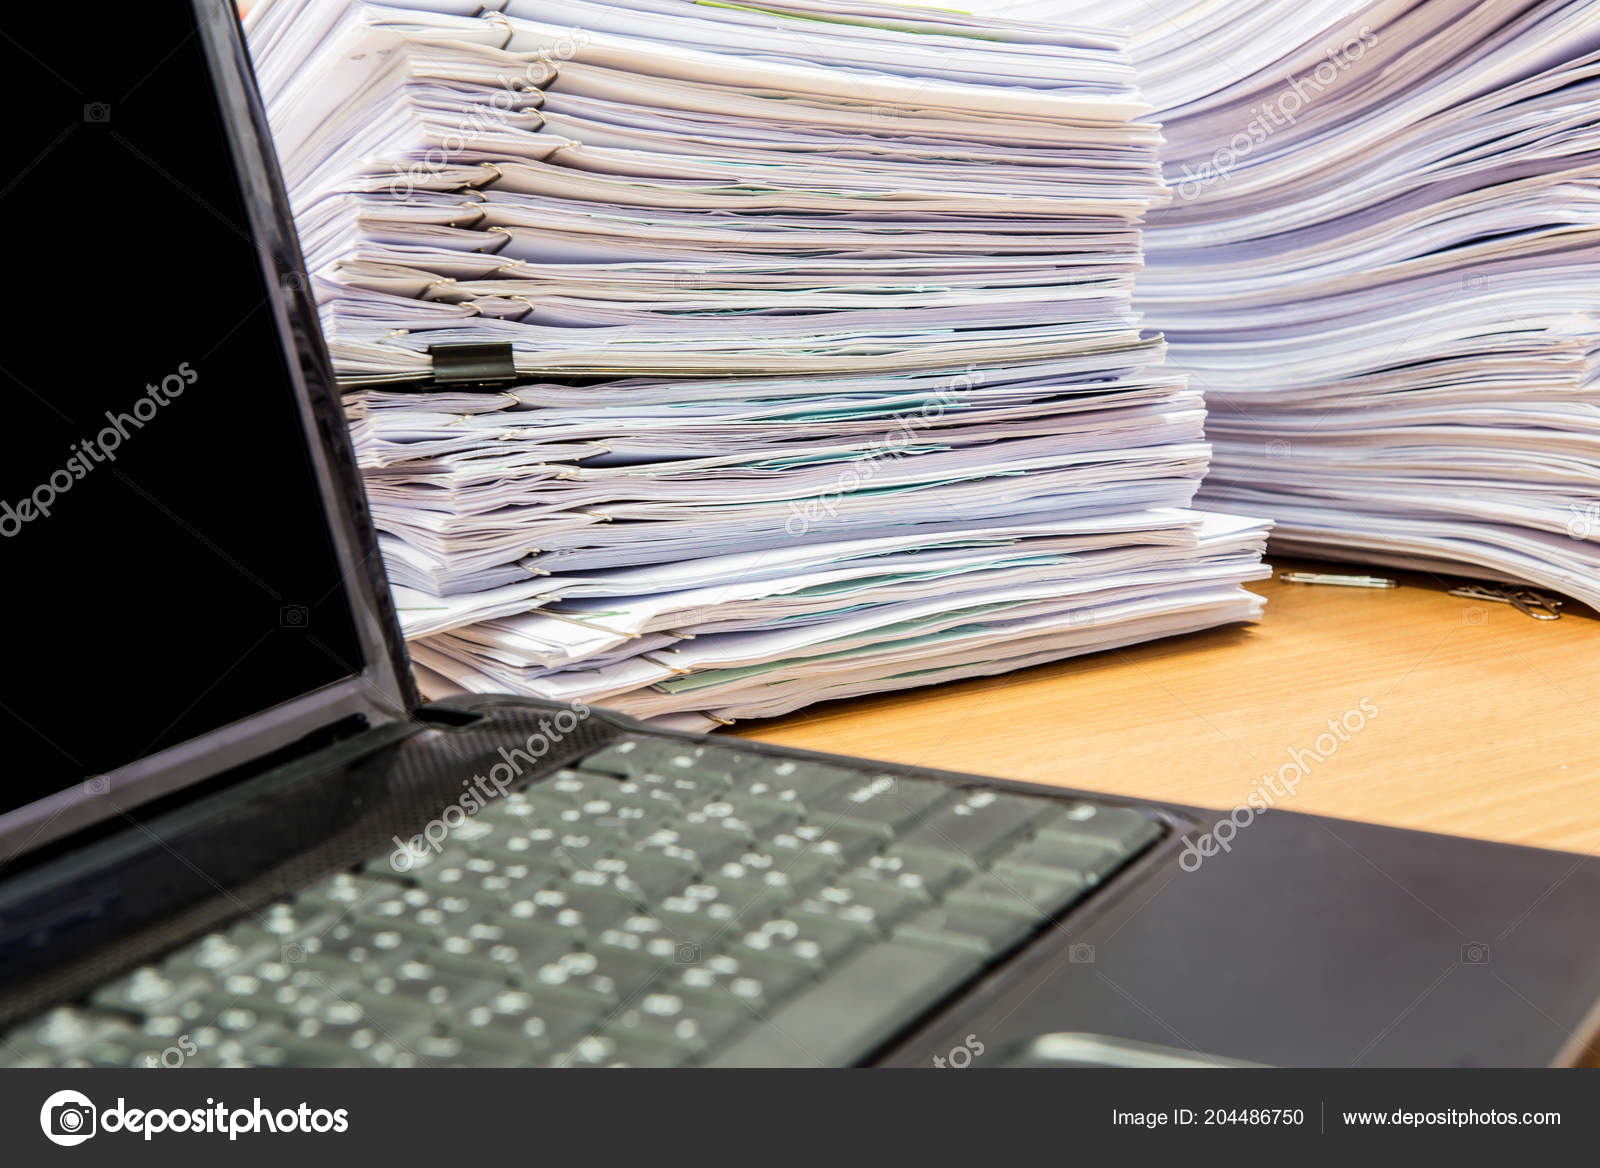 Computer Notebook Documents Desk Stack High Waiting Managed — Stock